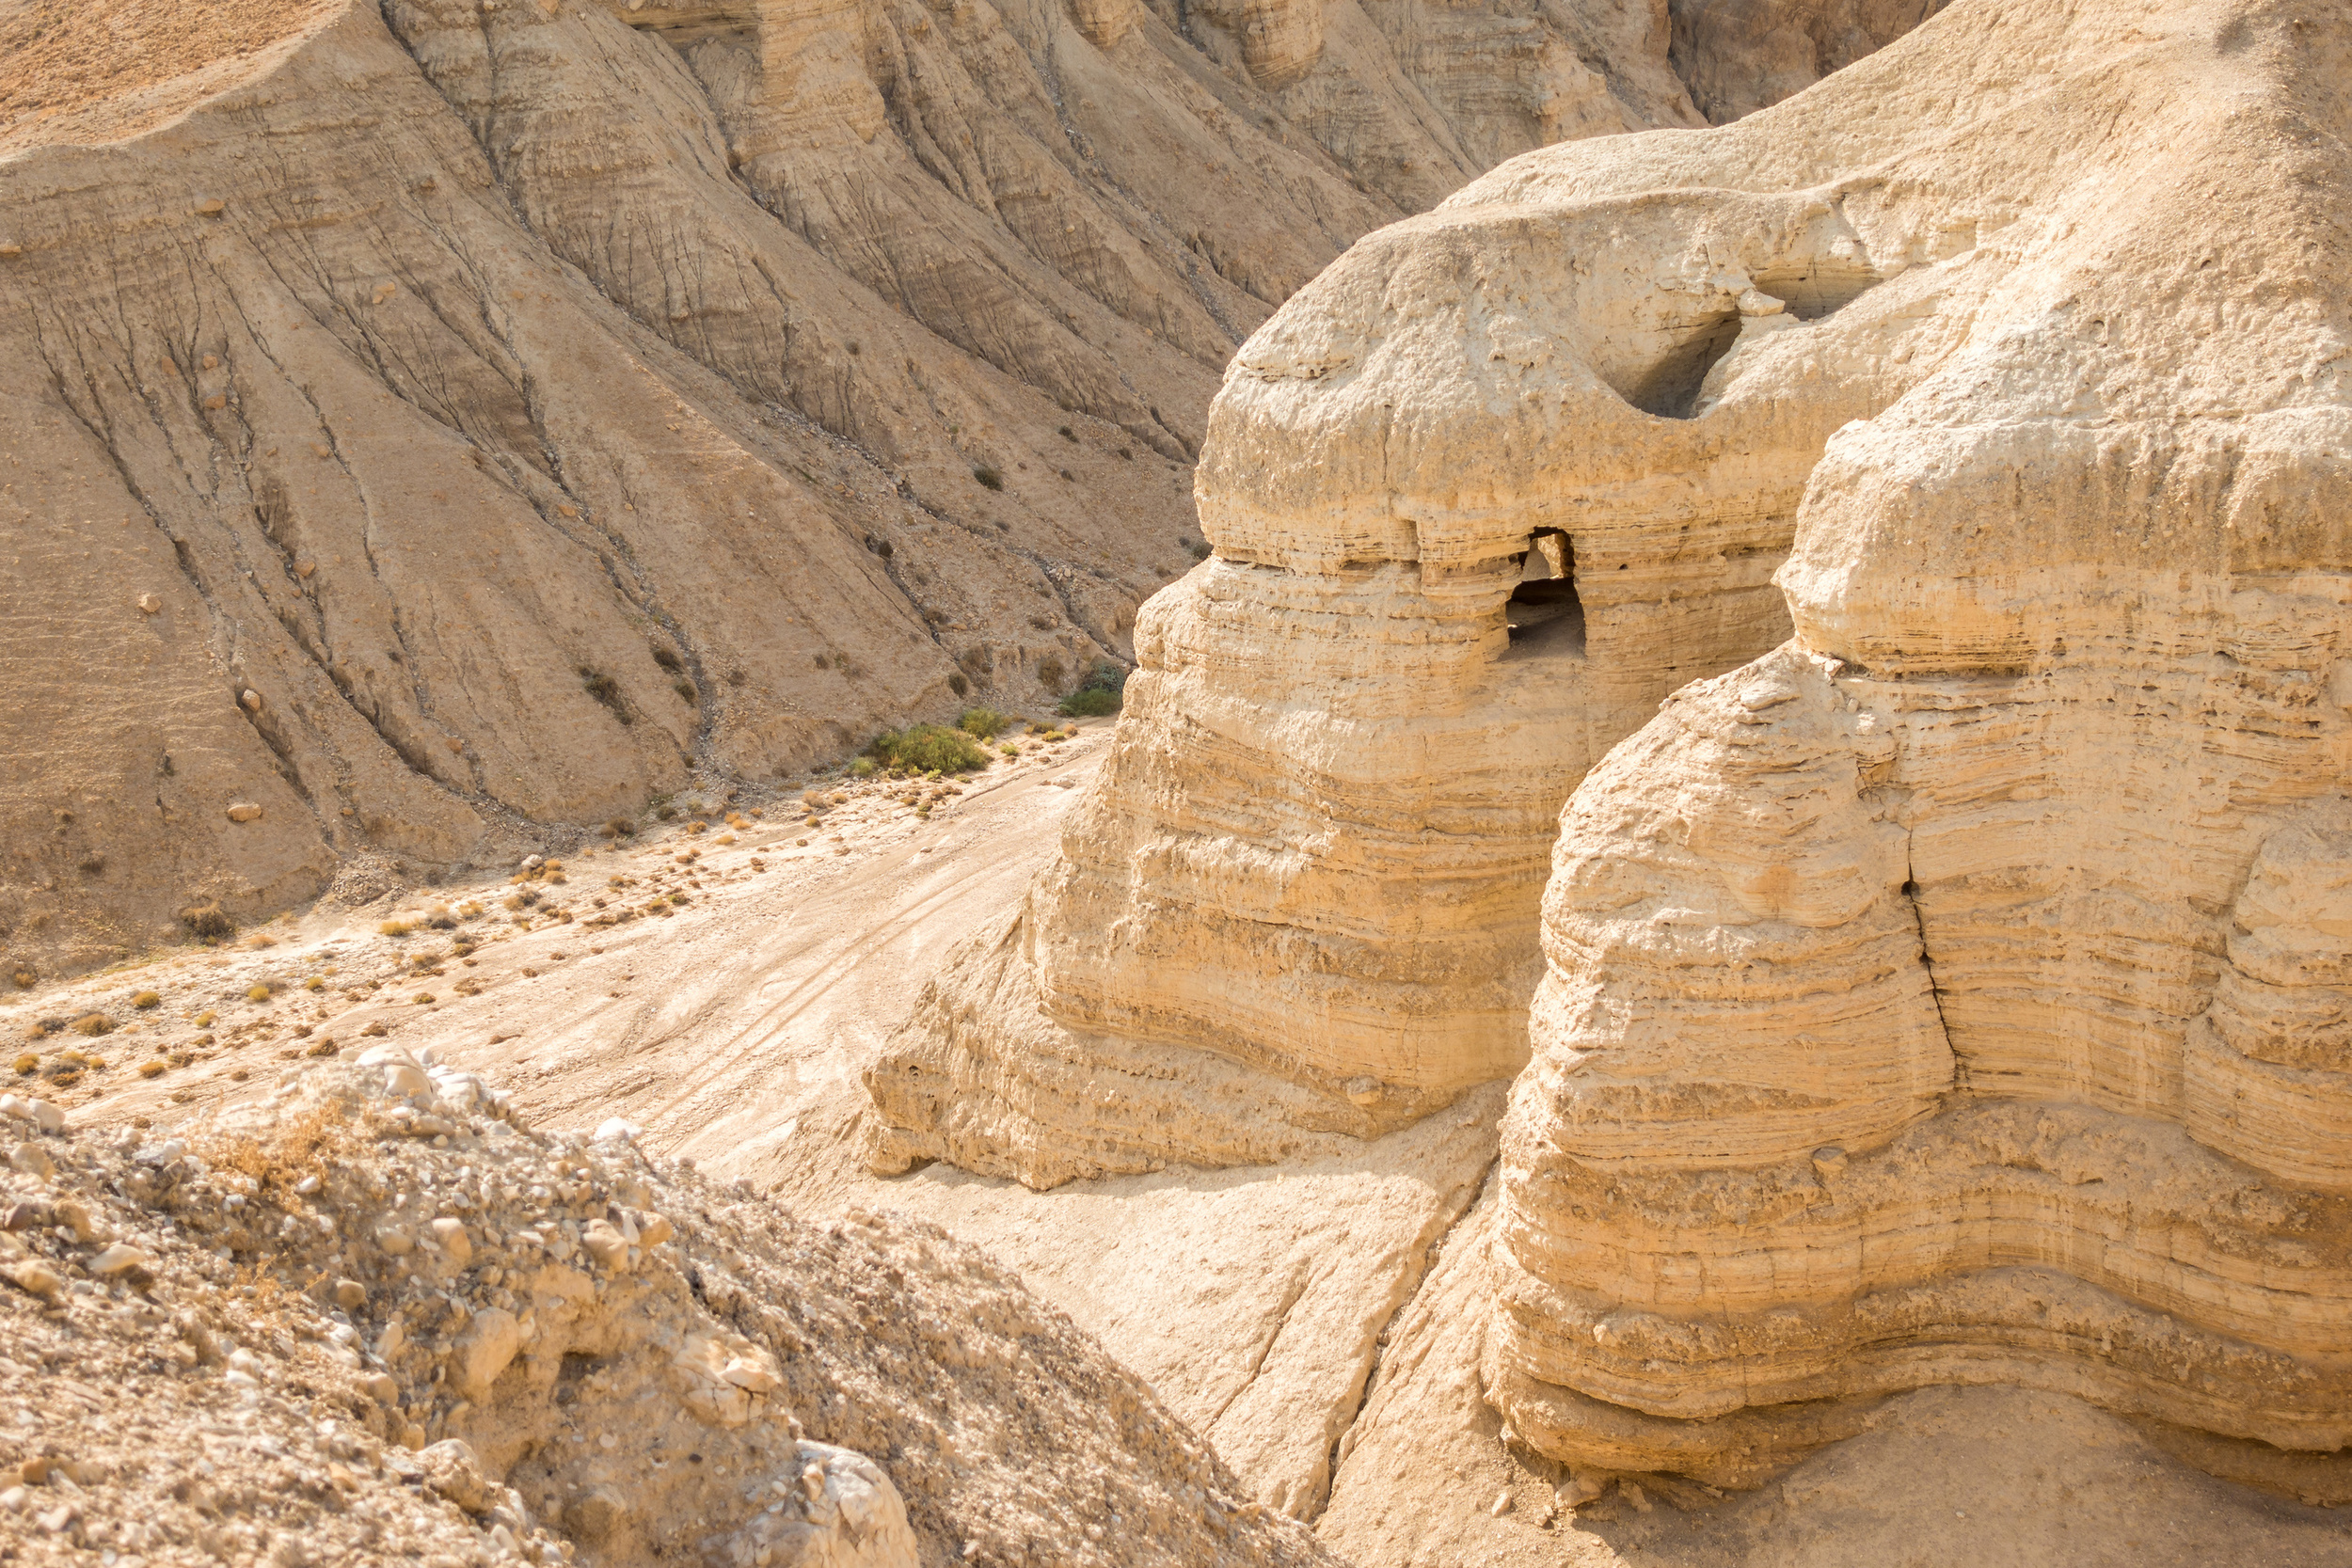 059739458-cave-qumran-where-dead-sea-scr.jpeg